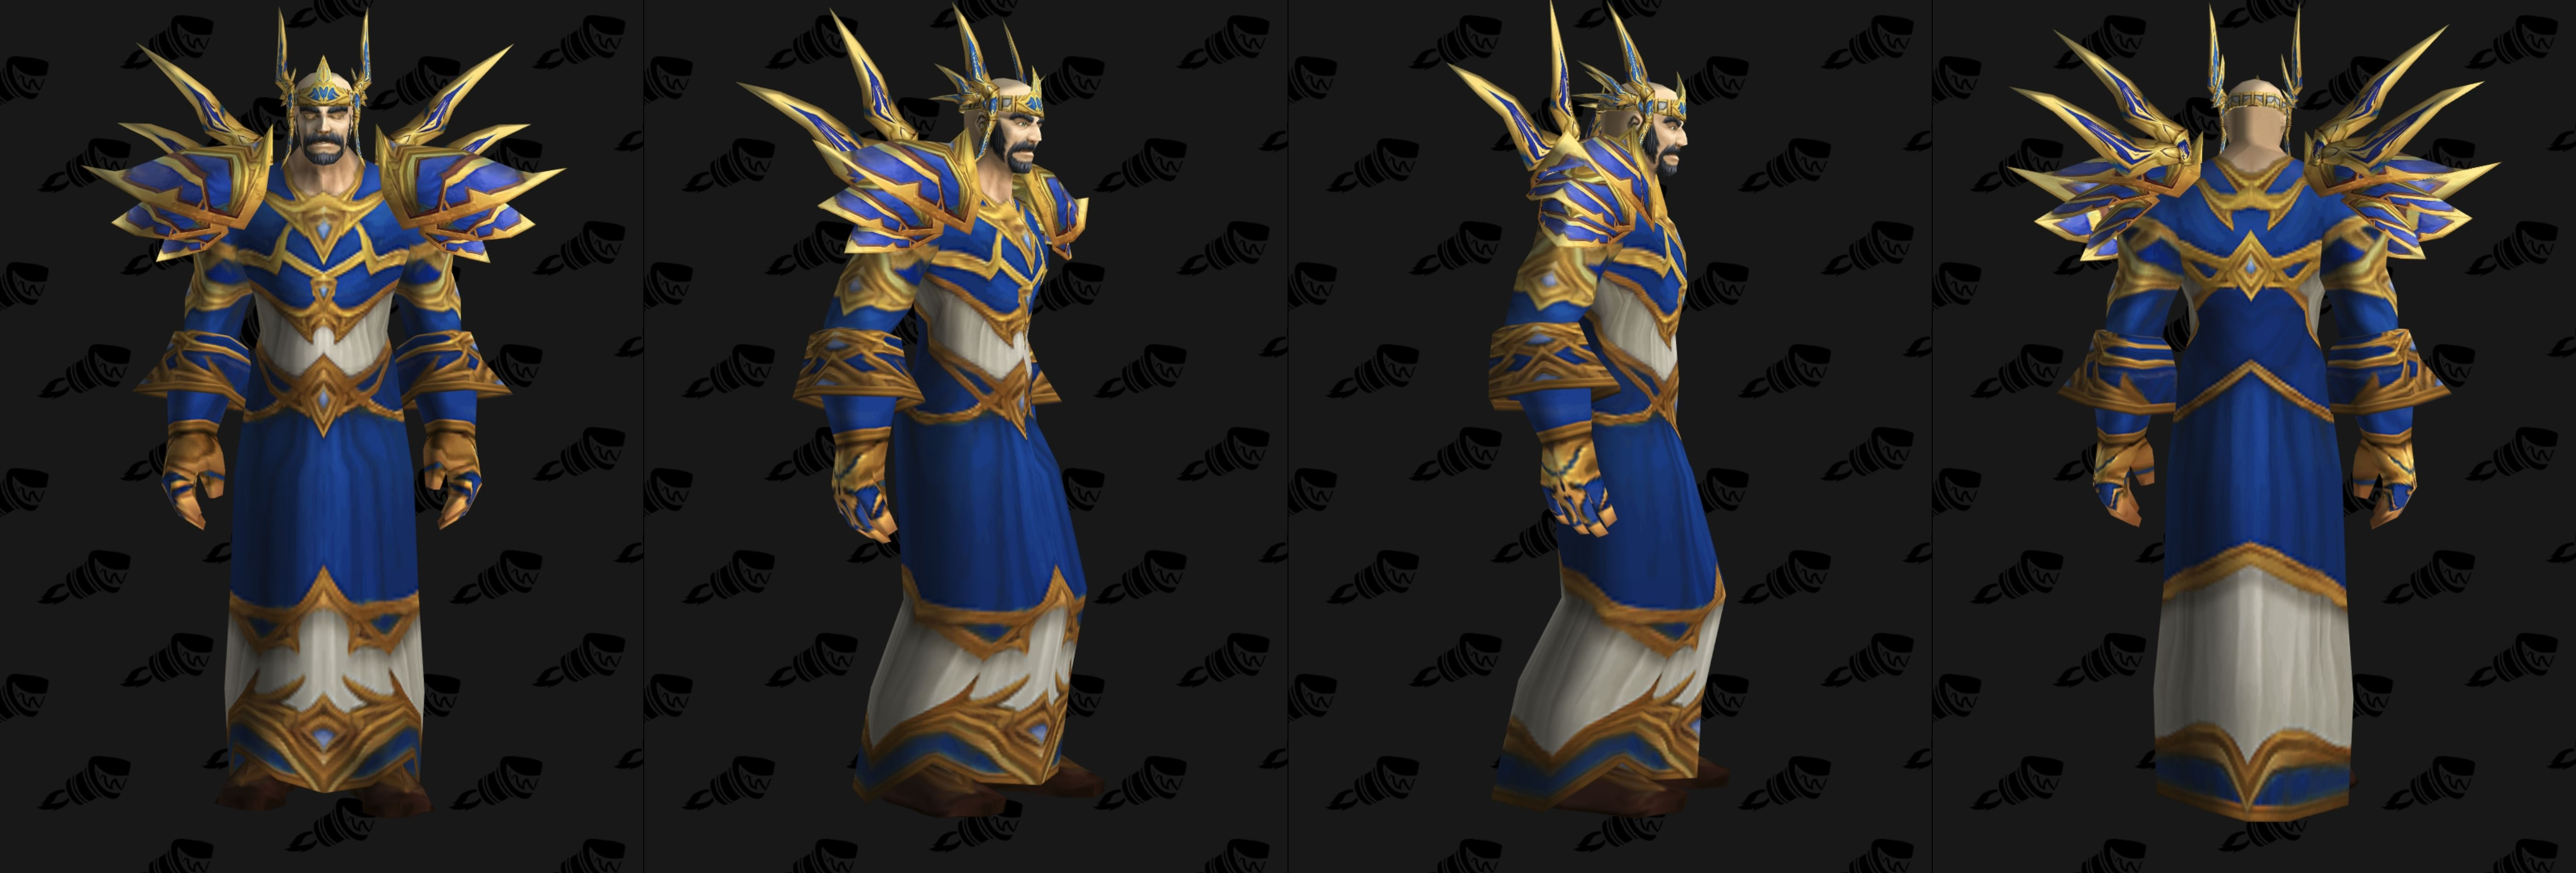 PvP Honor Sets Overview (Classic WoW) - Guides - Wowhead